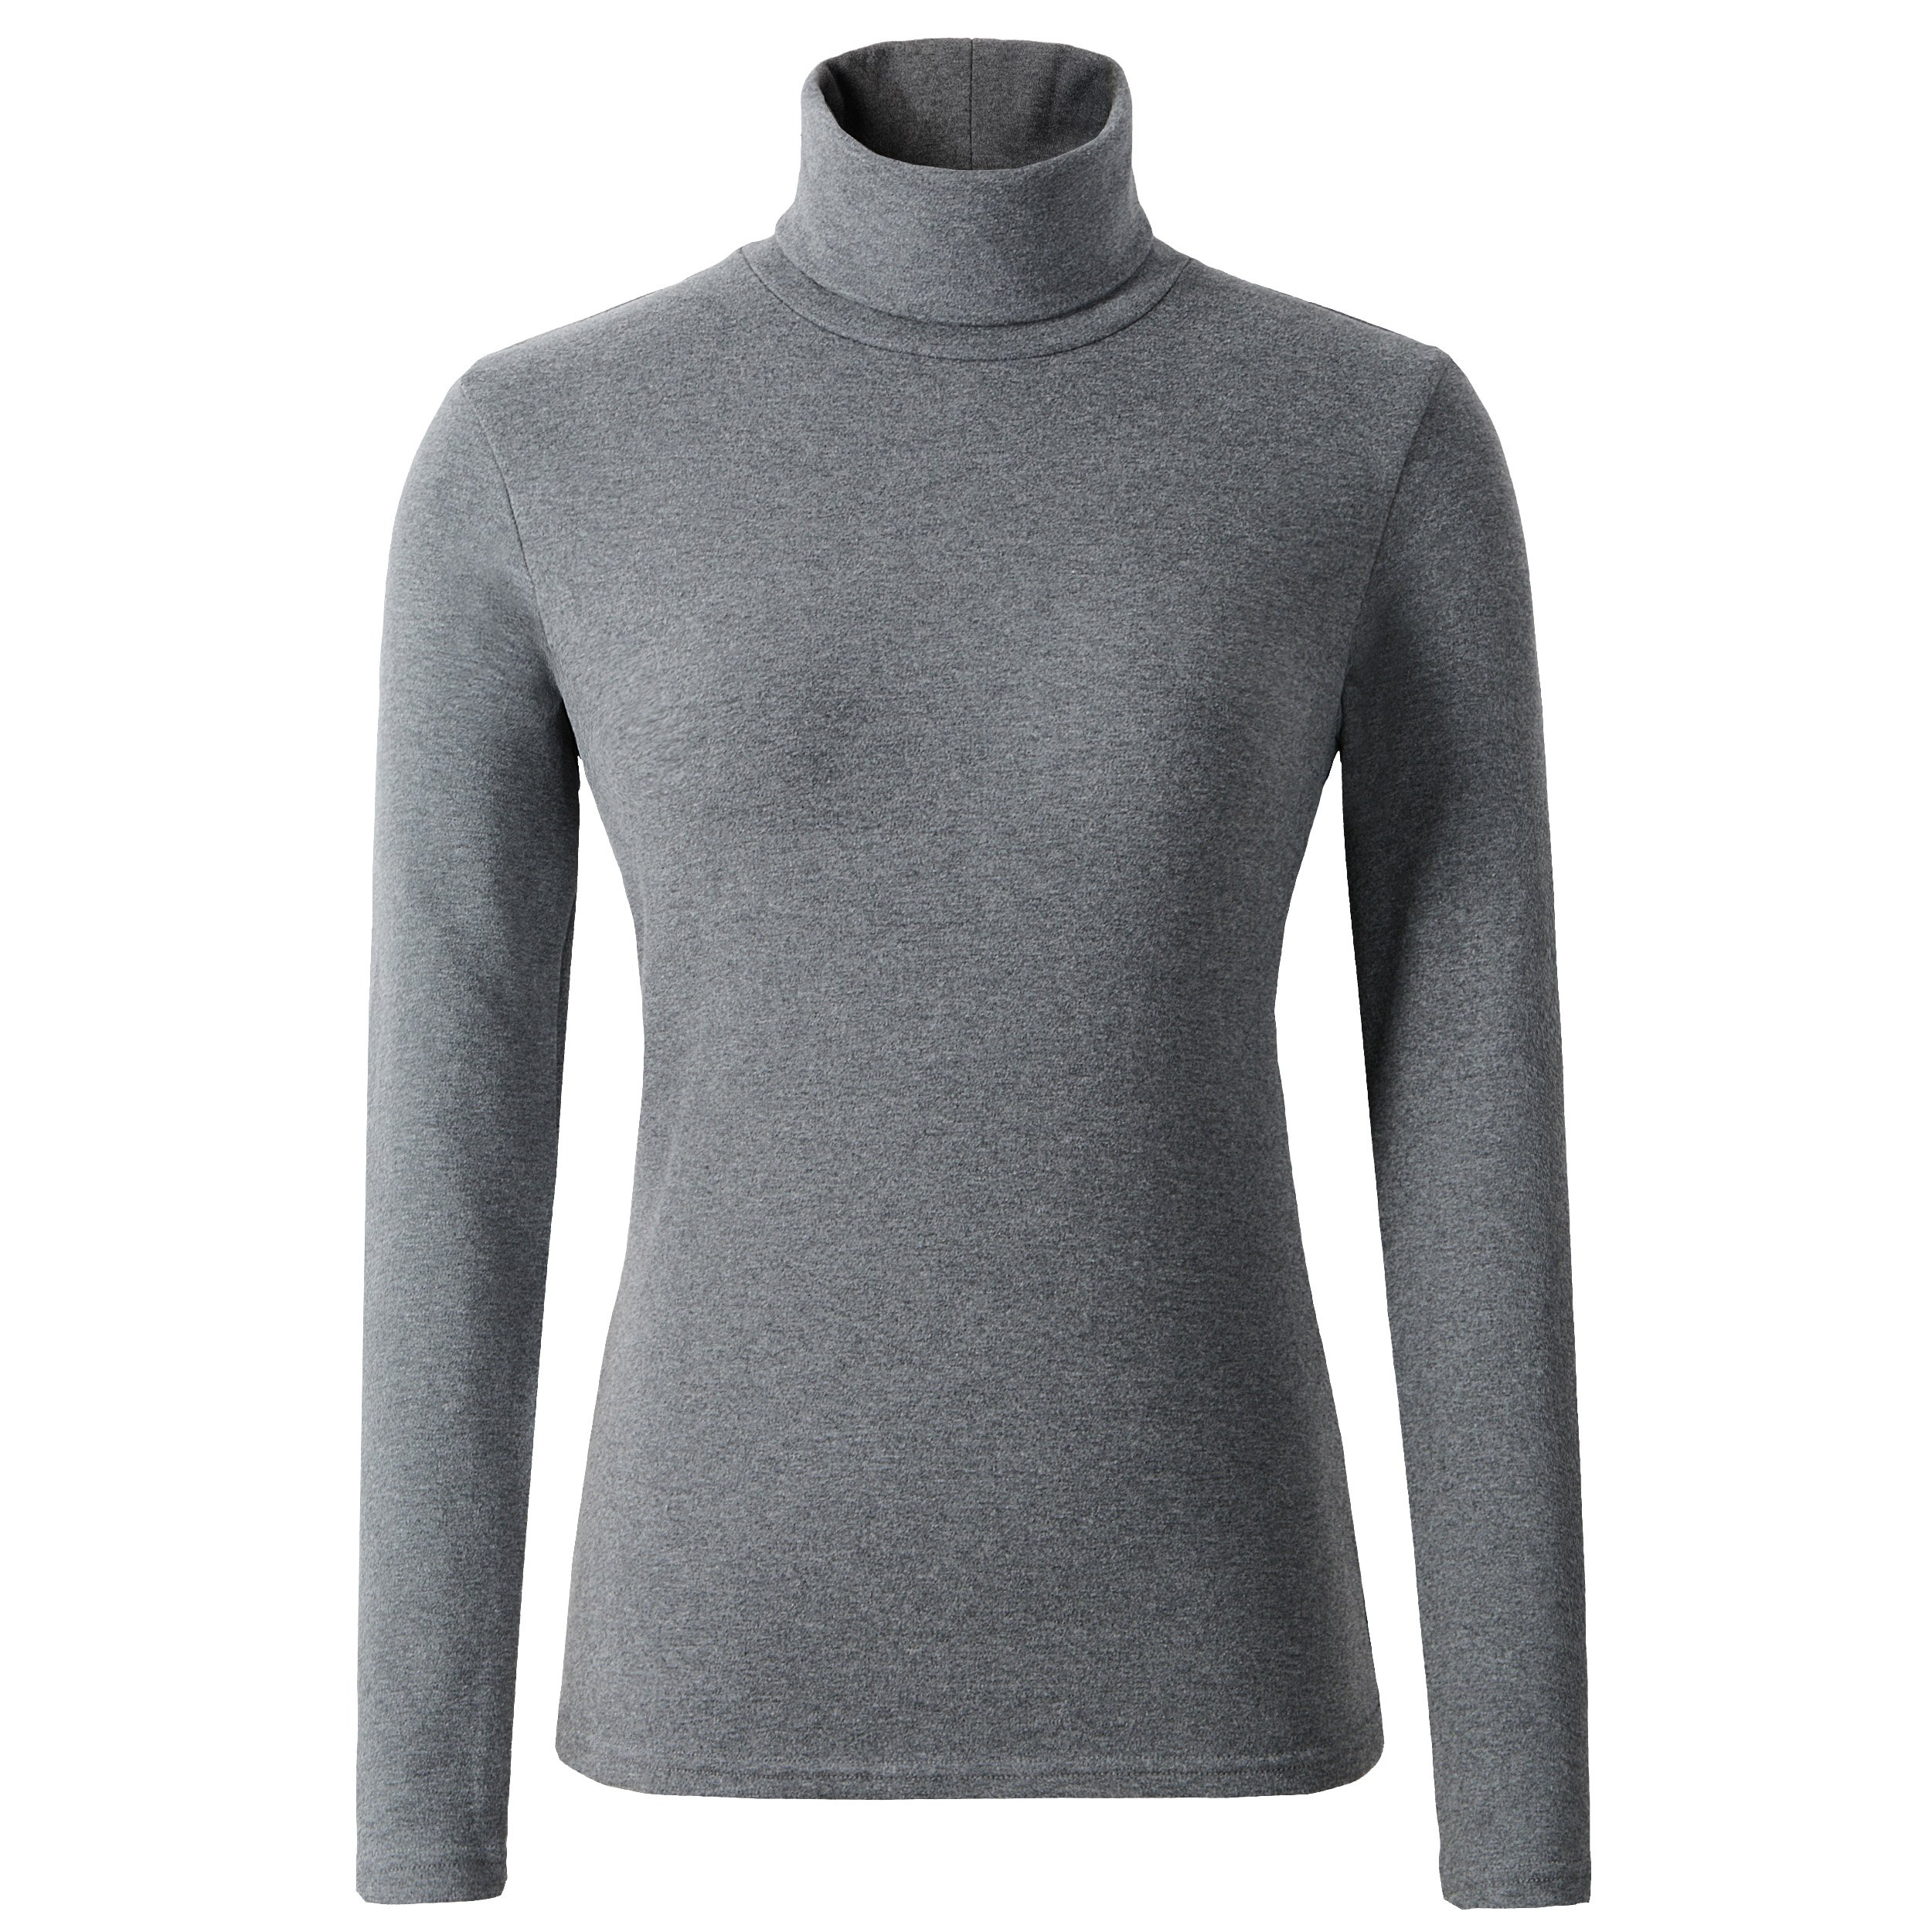 HieasyFit Women's Soft Cotton Turtleneck Top Basic Layer Darkgray S by HieasyFit